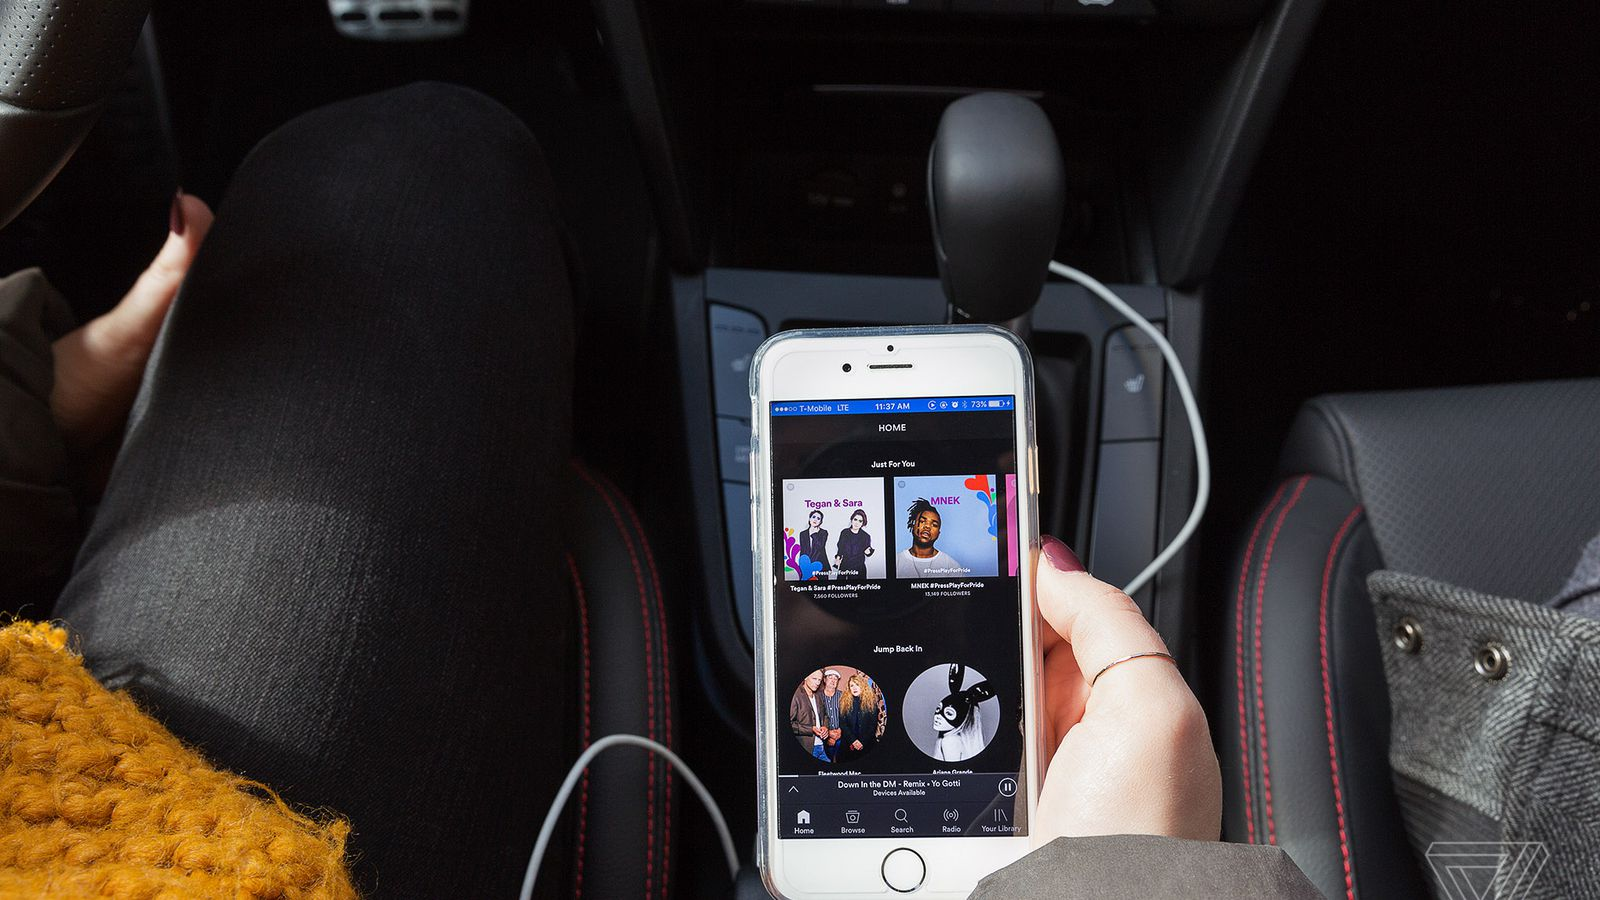 How to stop the same song from autoplaying every time you plug your phone into a car